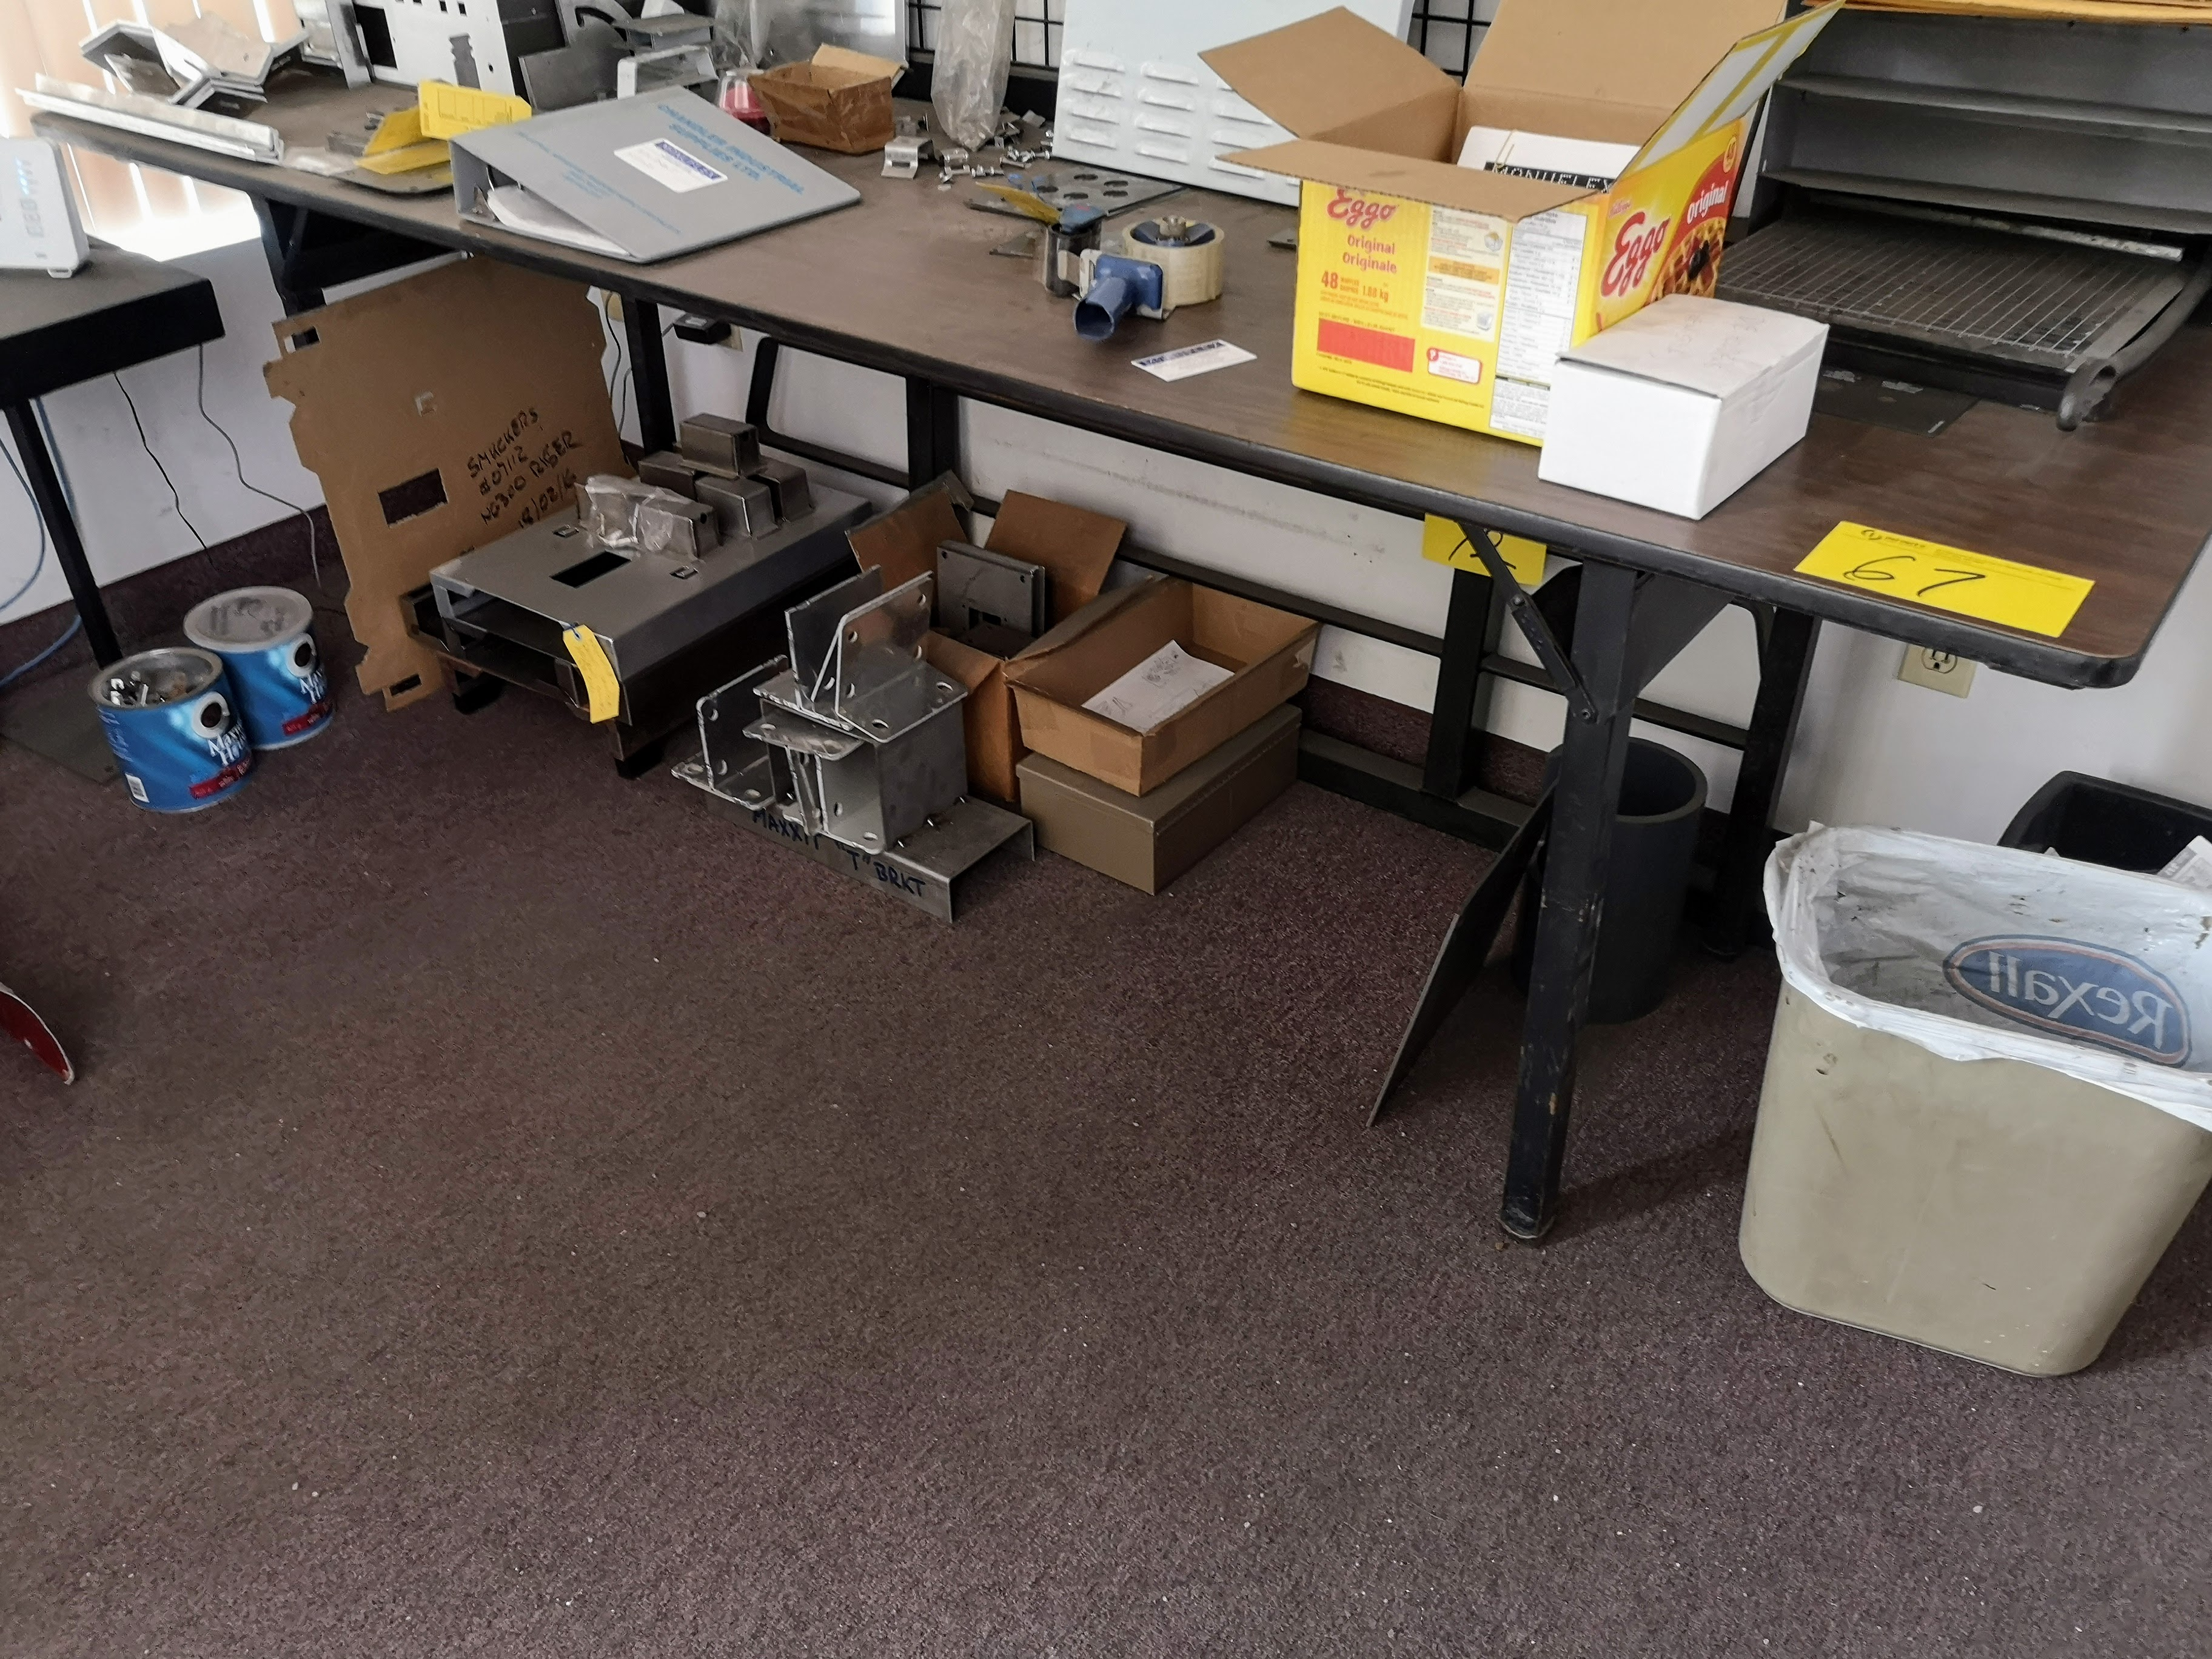 CONTENTS OF OUTTER OFFICE (NO PERSONAL EFFECTS OR COMPUTER EQUIPMENT) - Image 2 of 3